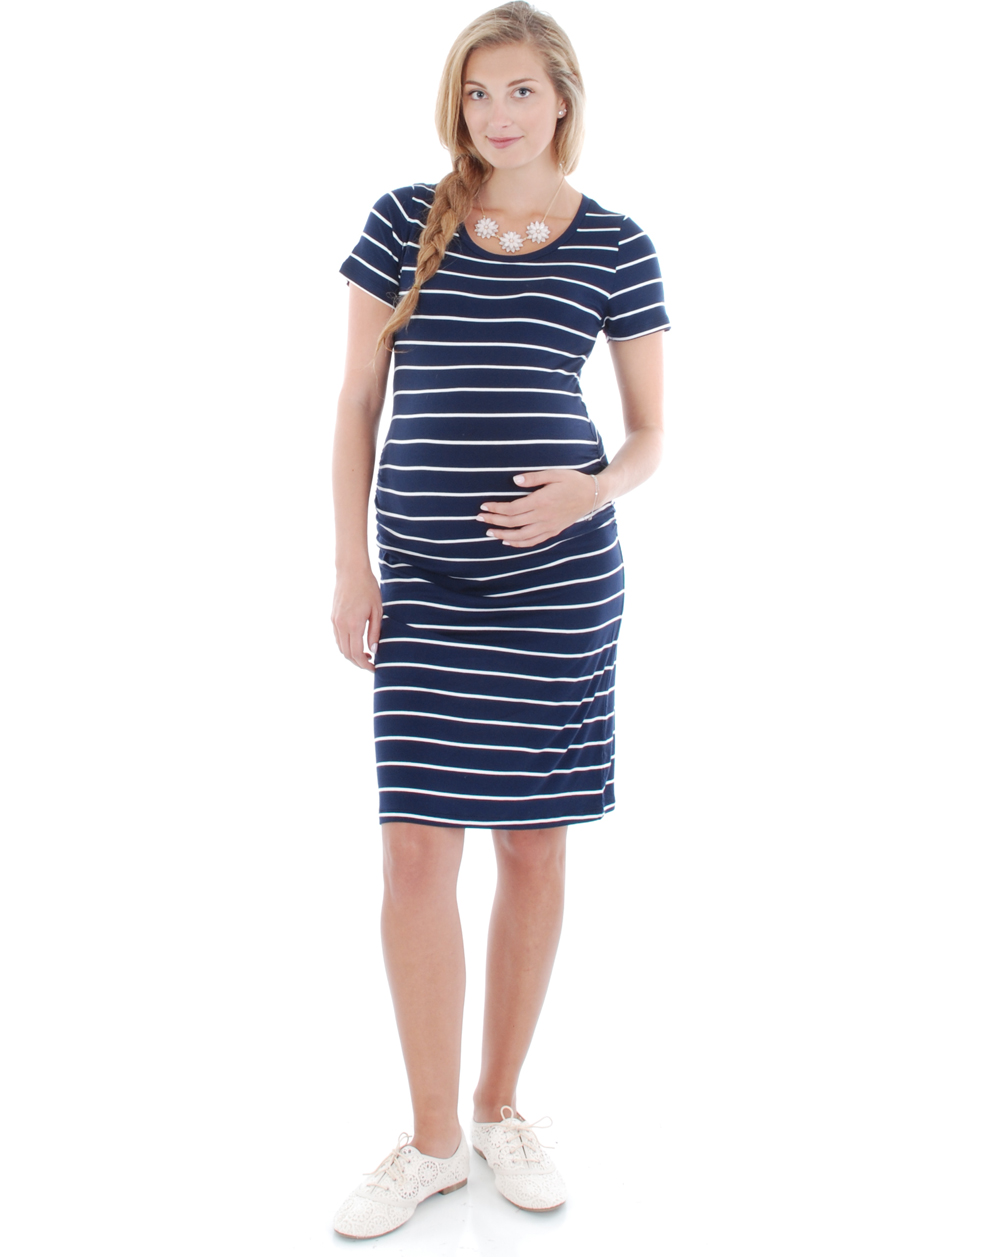 Maternity clothes rental affordable pregnancy wear dress clothes previous next ombrellifo Image collections